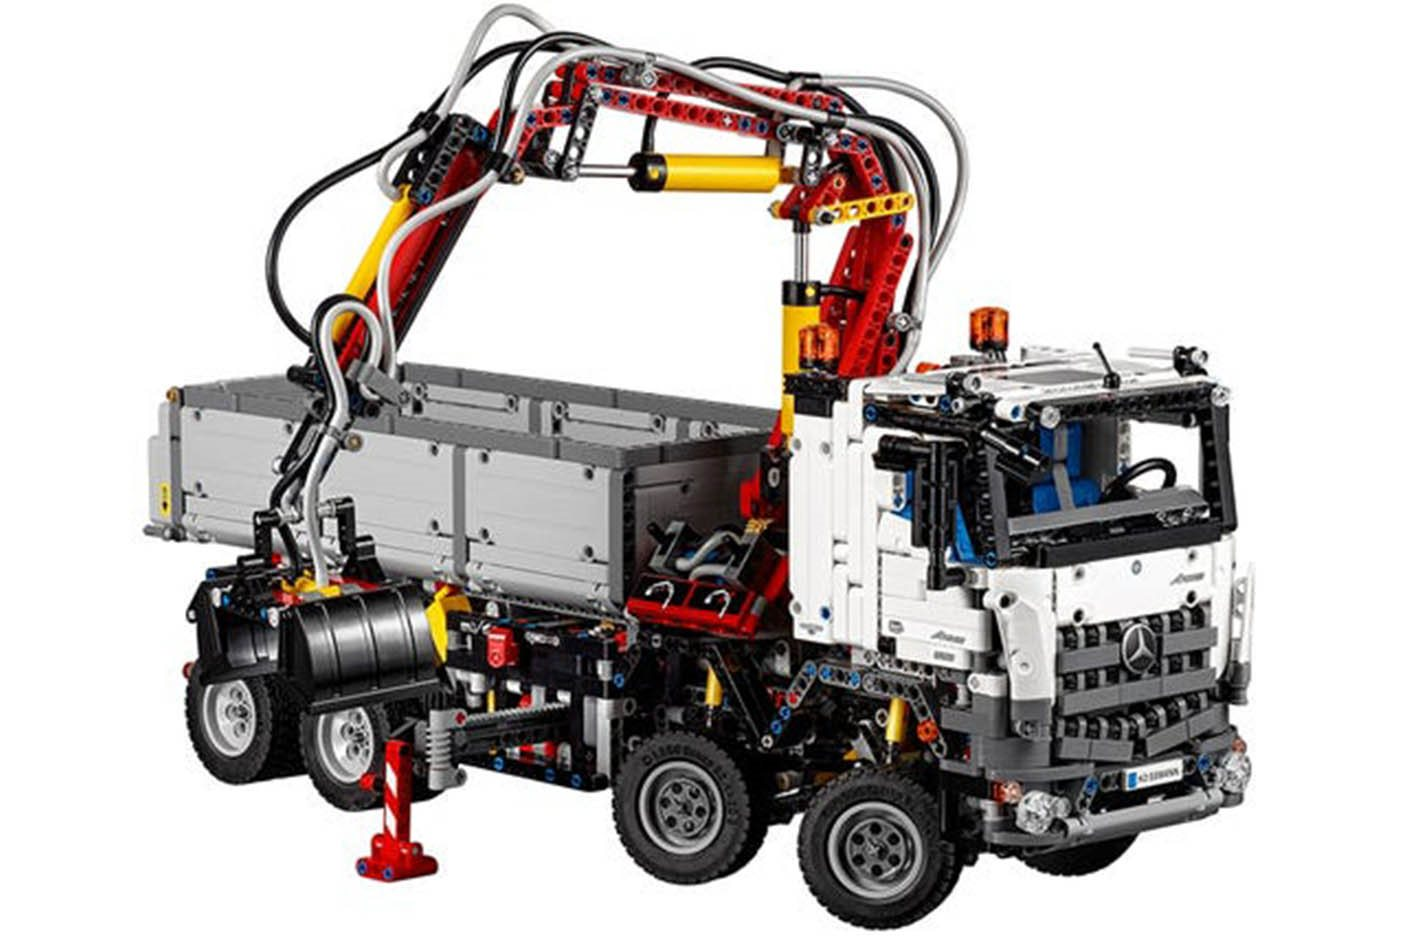 The 10 Best Lego Car Sets